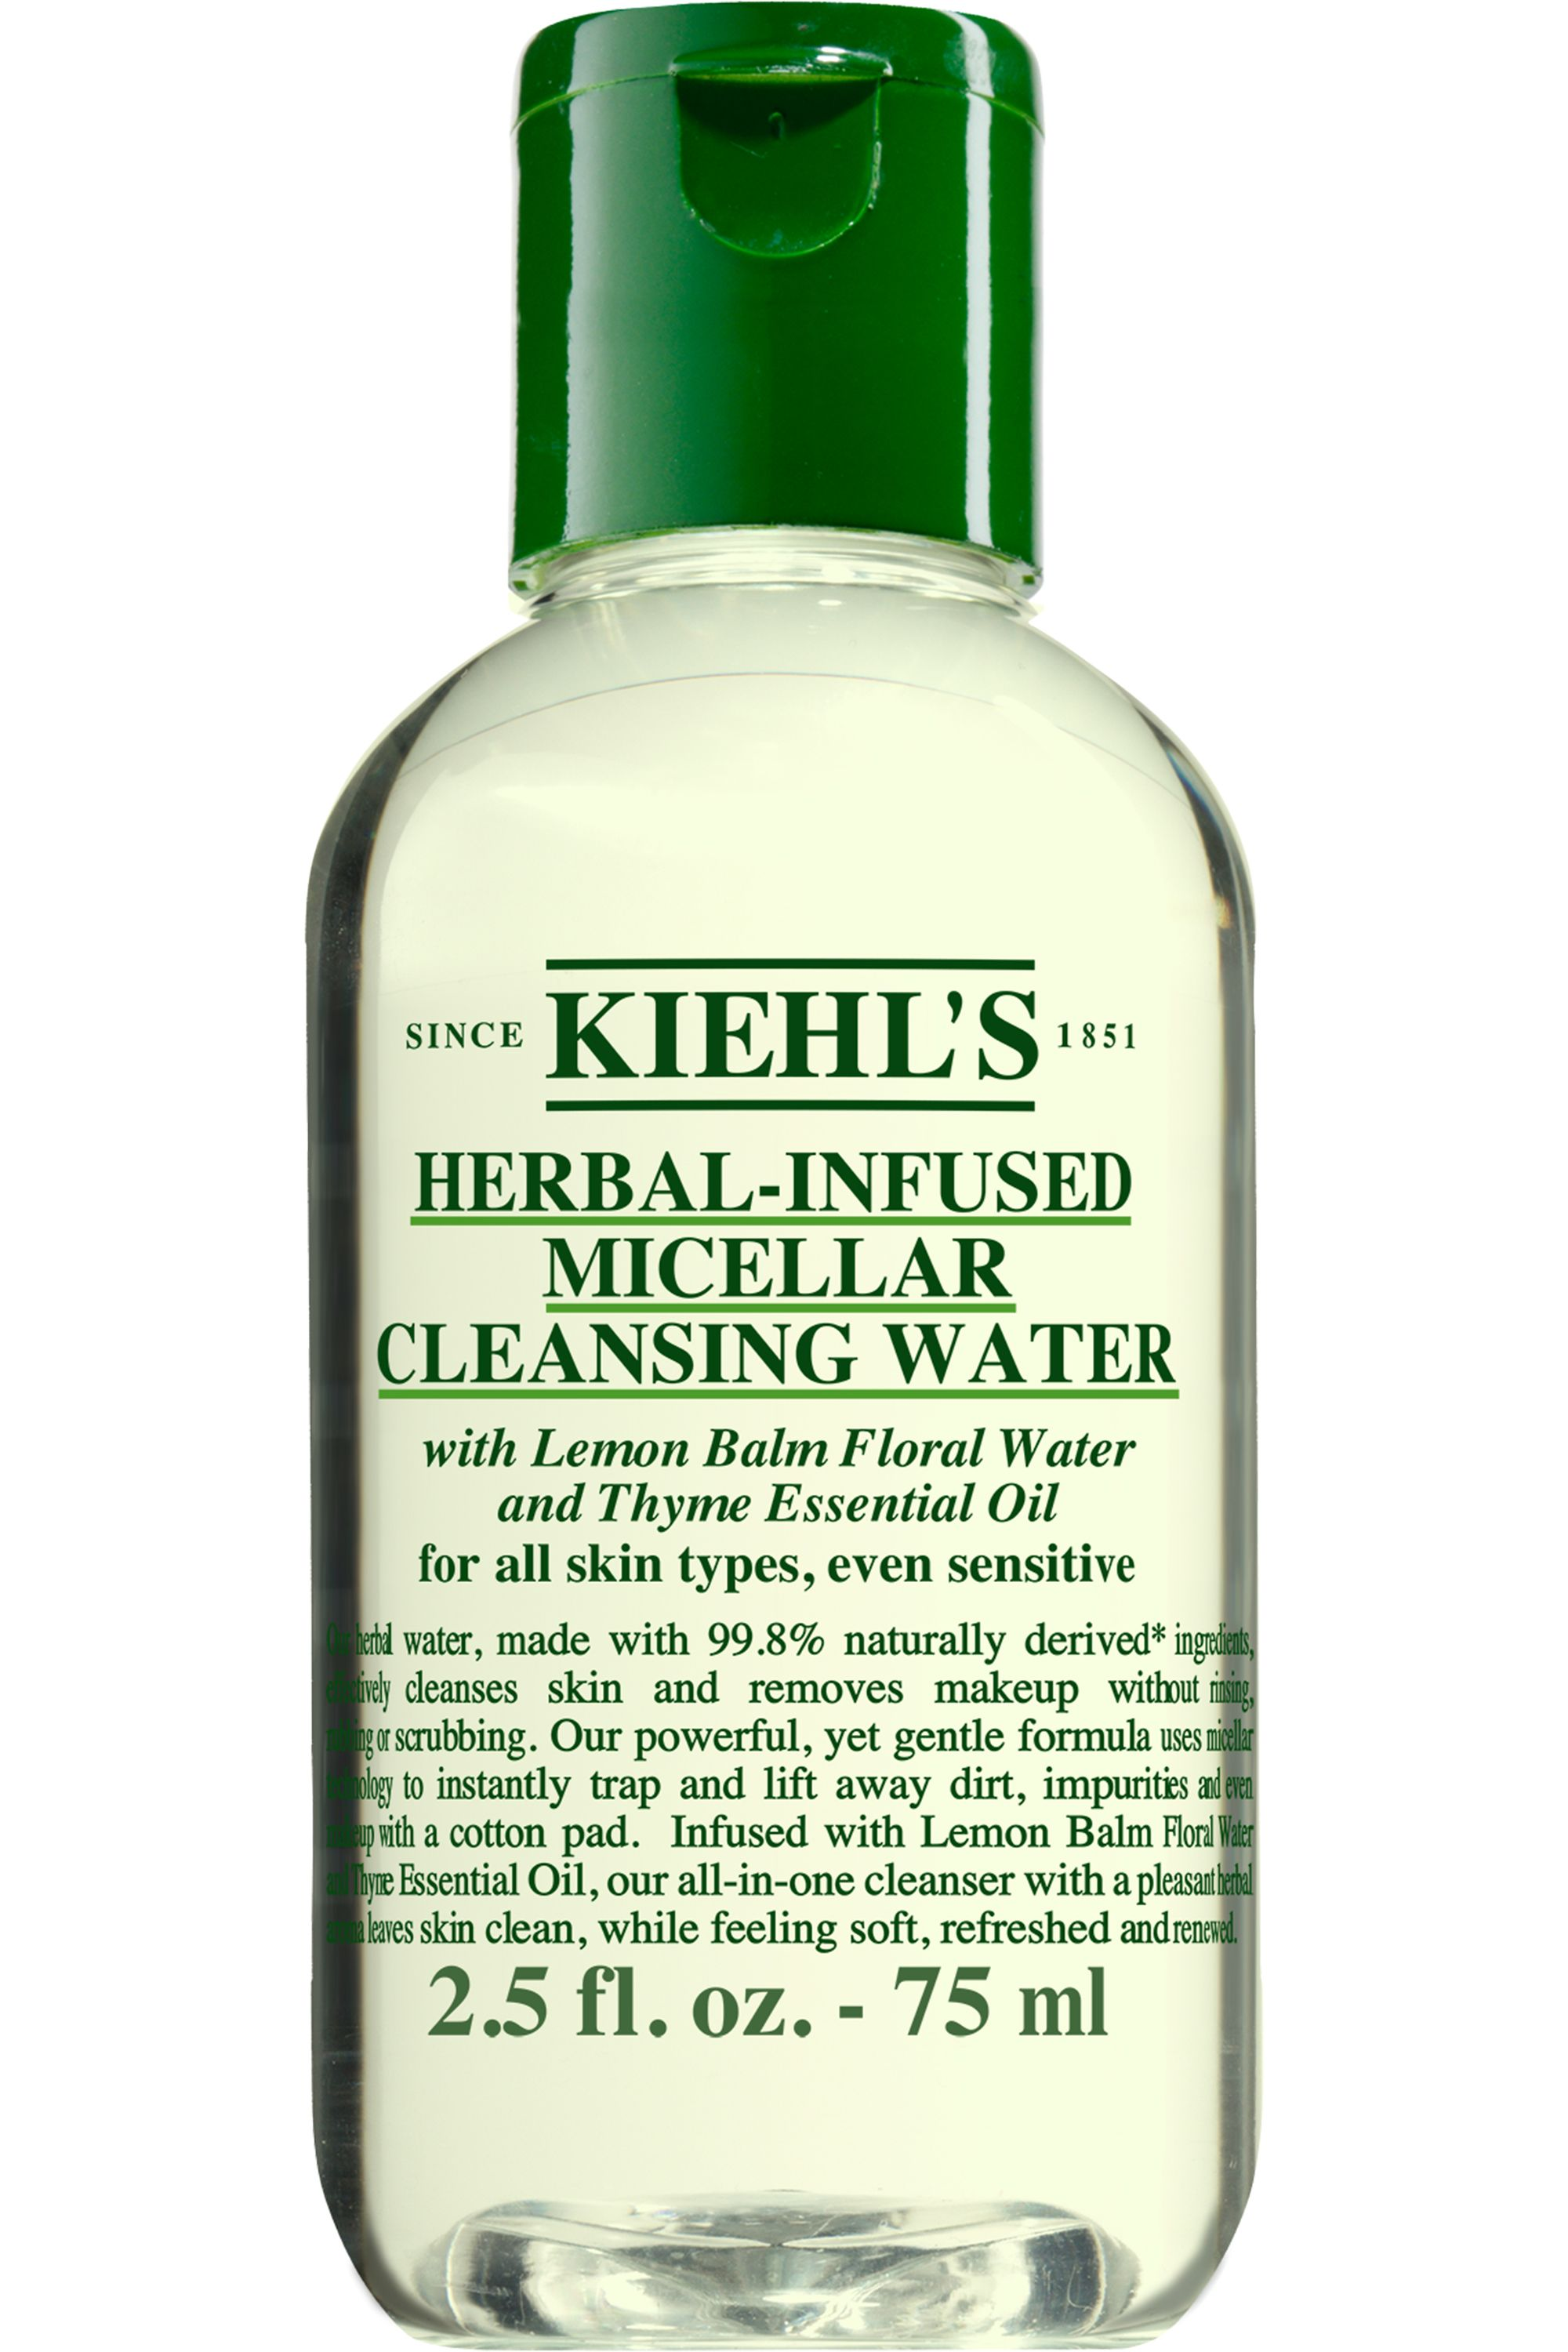 Blissim : Kiehl's - Eau micellaire nettoyante hydratante sans rinçage Herbal Micellar Water - 75 ml